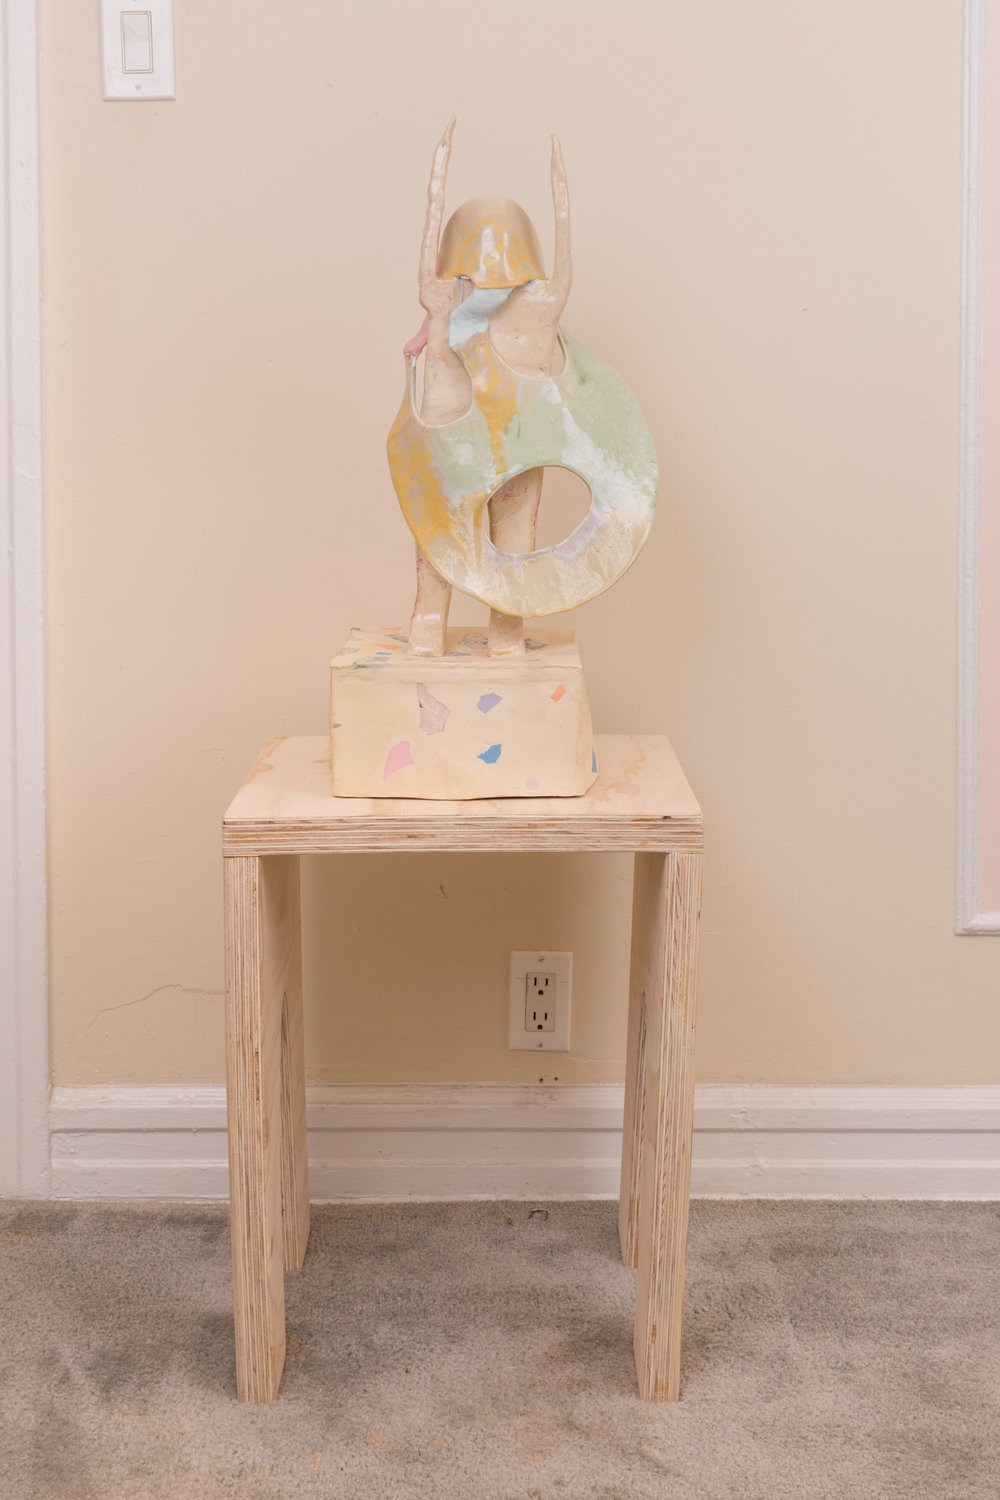 Moisture Surge (2017) crystalline glaze, magic sculpt, ceramic and tinted porcelain, 23 x 12 x 12 inches